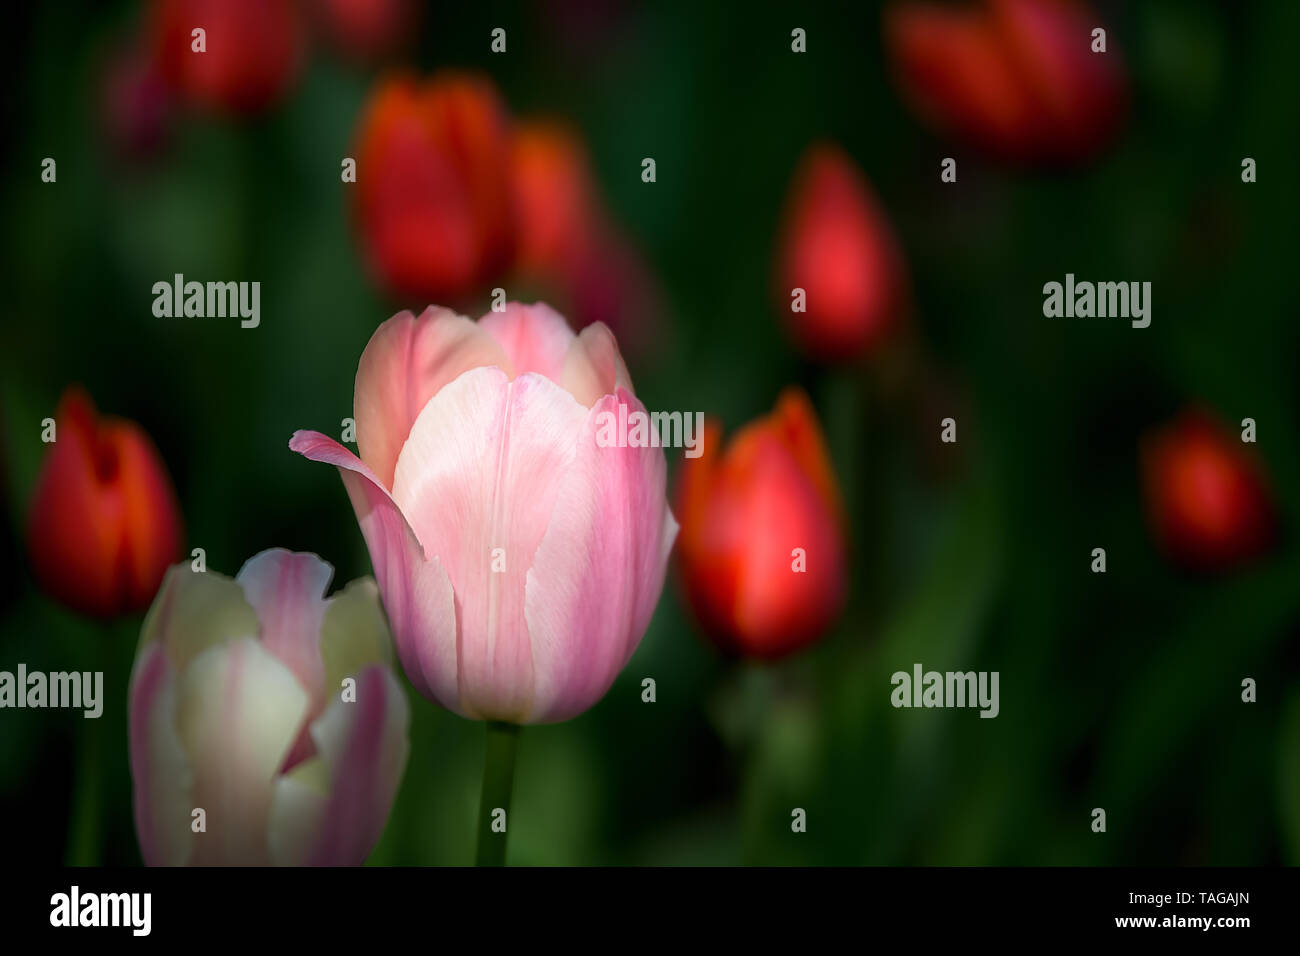 Beautiful white-pink tulip with red blurry flowers around and green background. - Stock Image